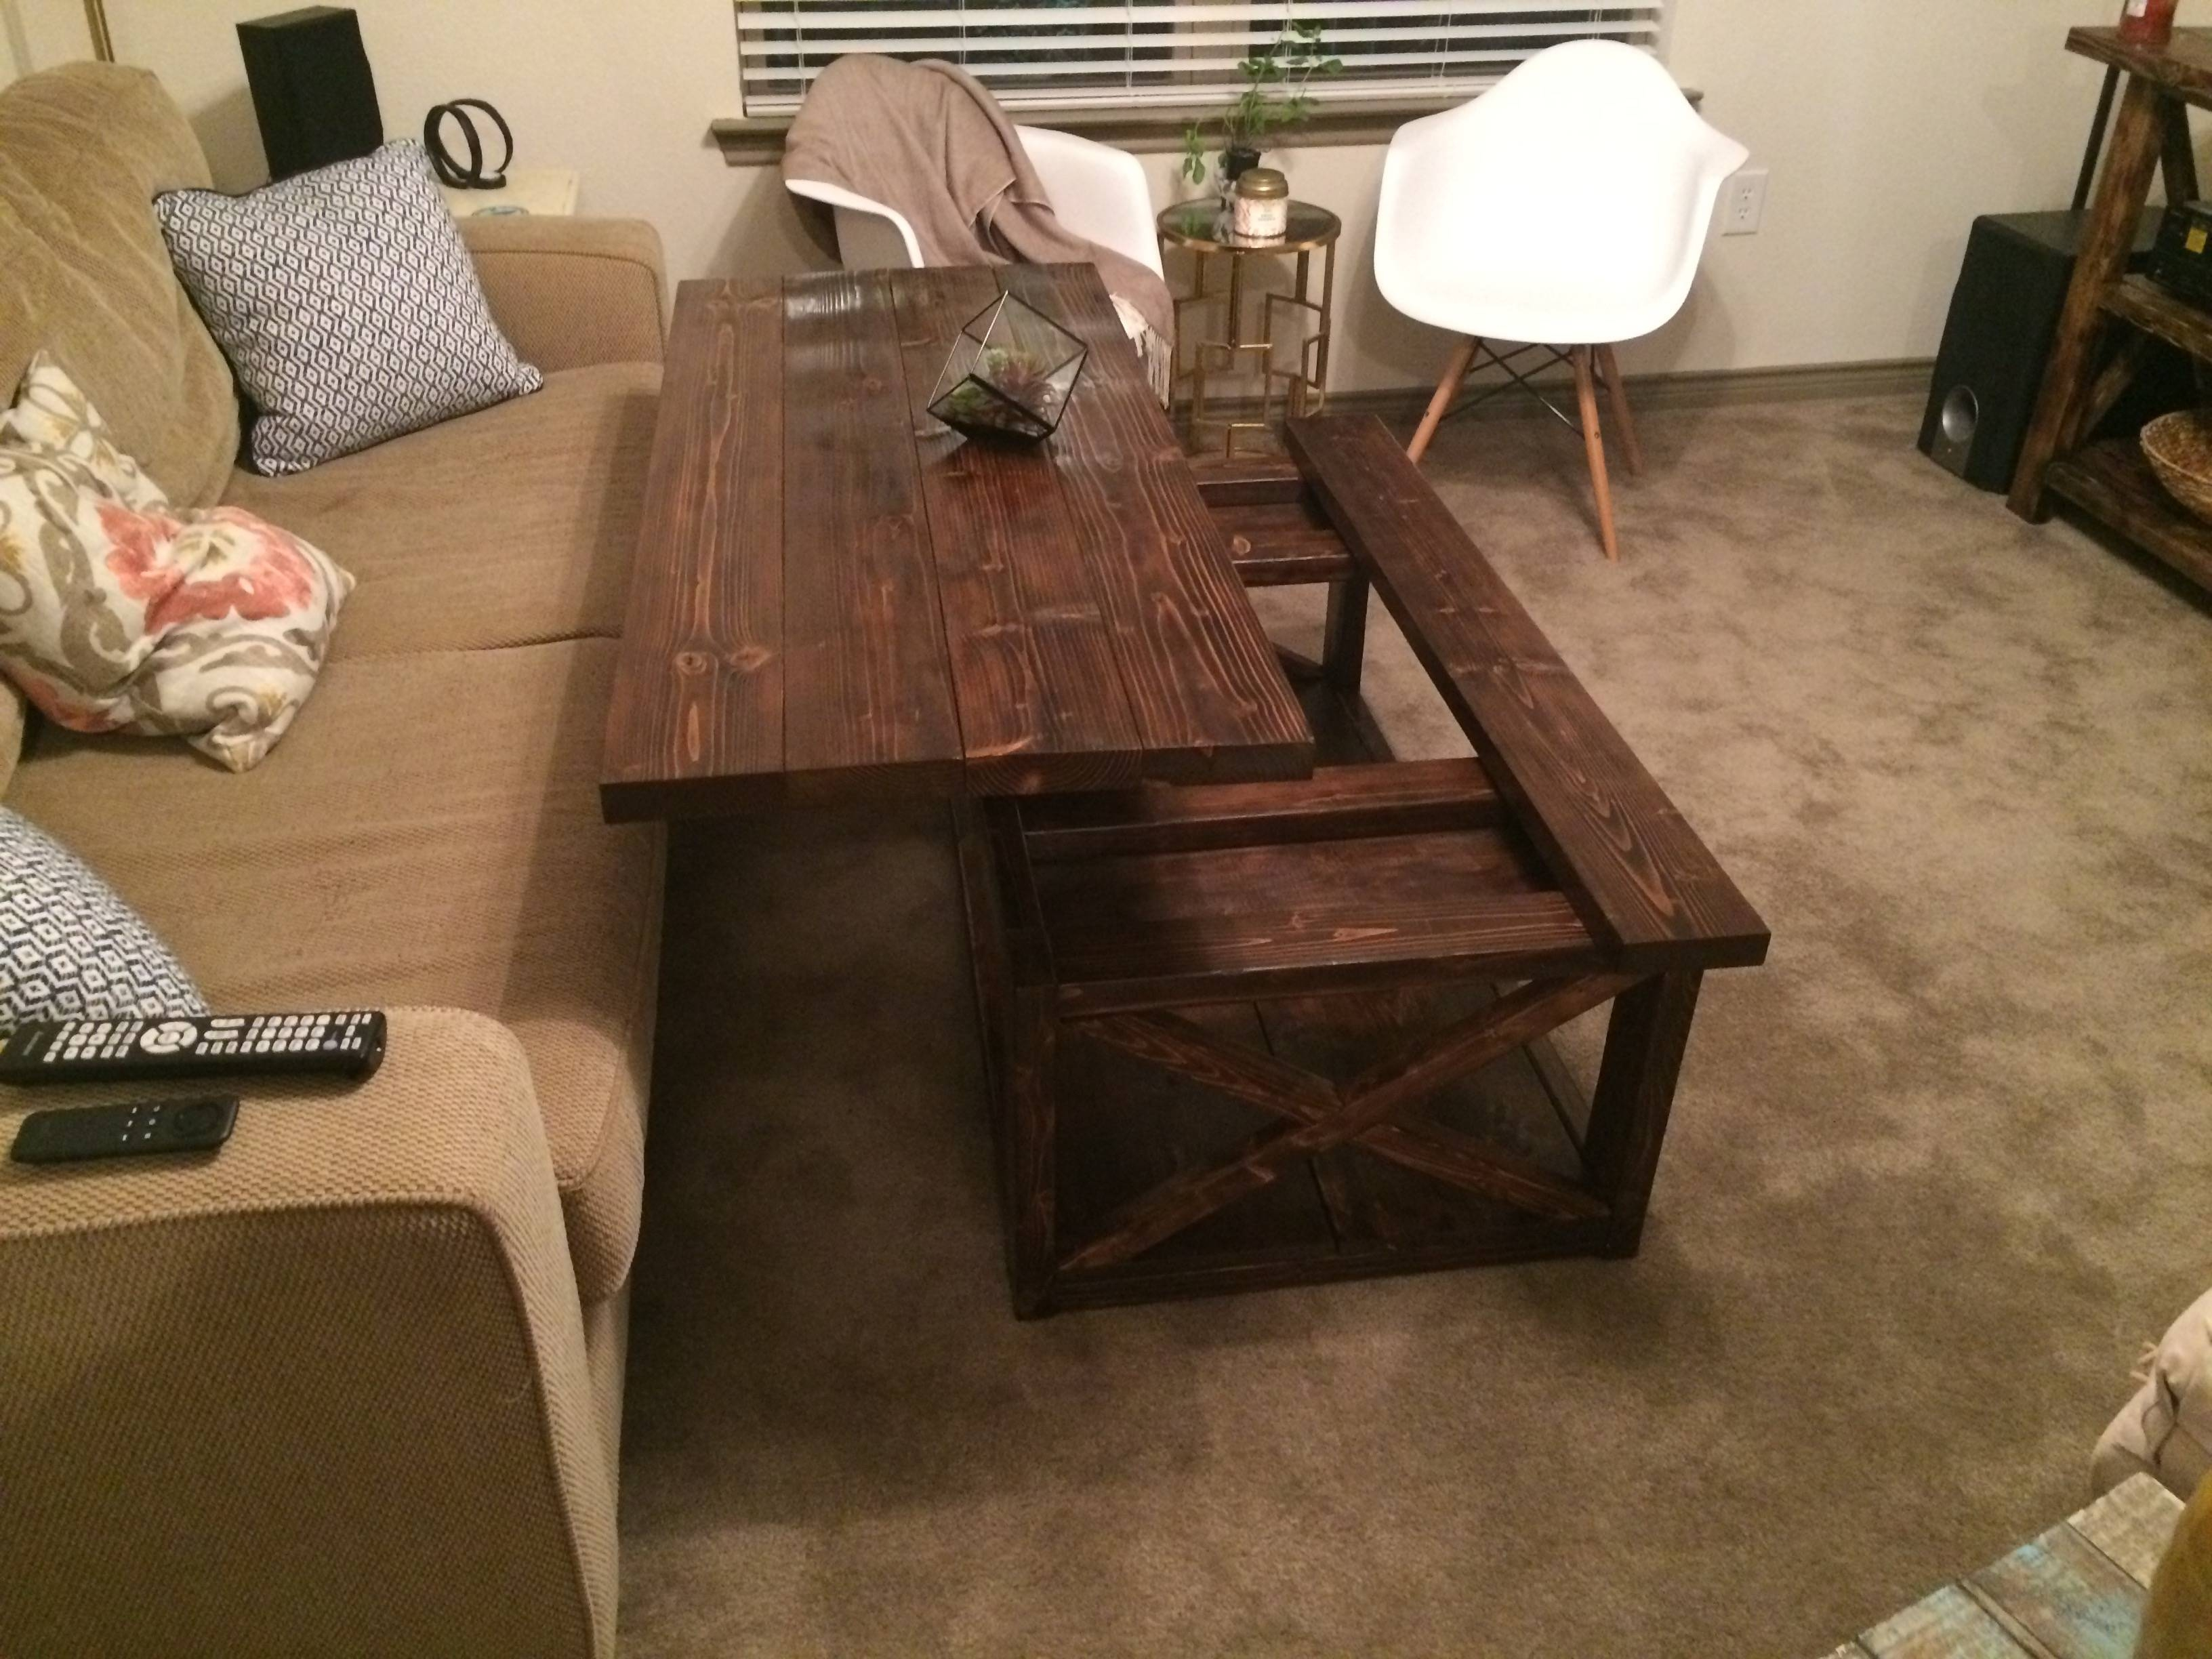 Ana White | Diy Lift Top Coffee Table – Rustic X Style – Diy Projects For Lift Coffee Tables (View 11 of 30)